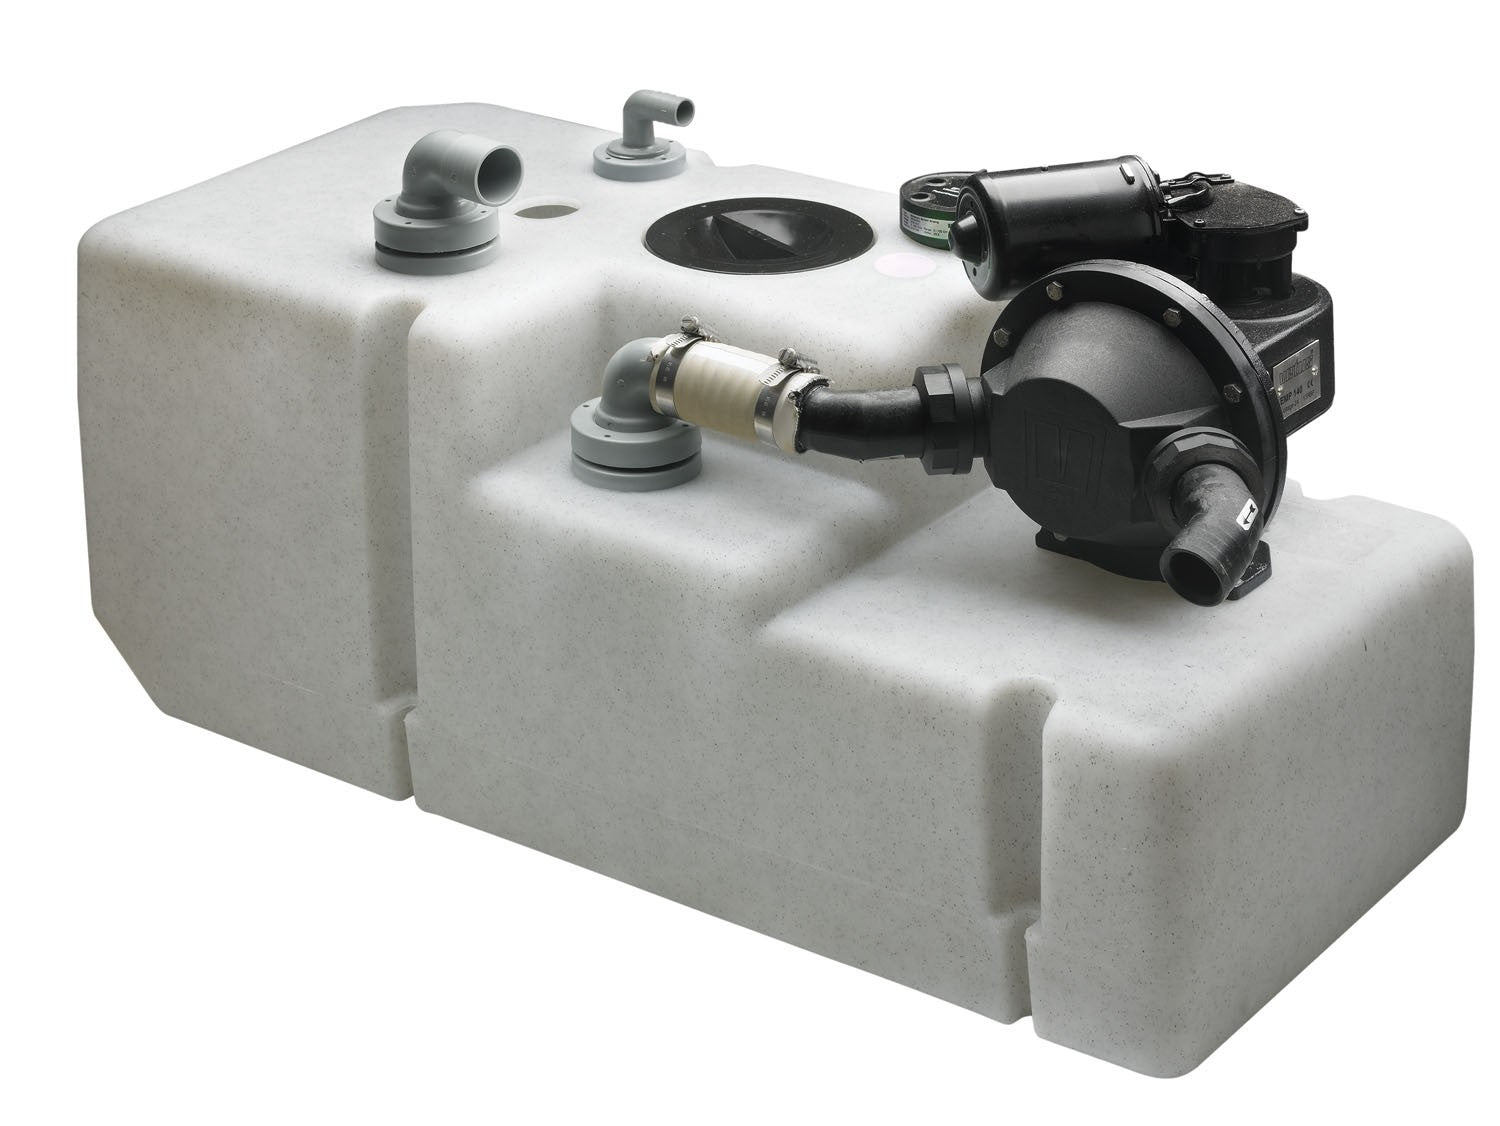 Vetus waste water tank system 120 ltrs, incl 24 volt pump, float and suction pipe (excl angled fittings)